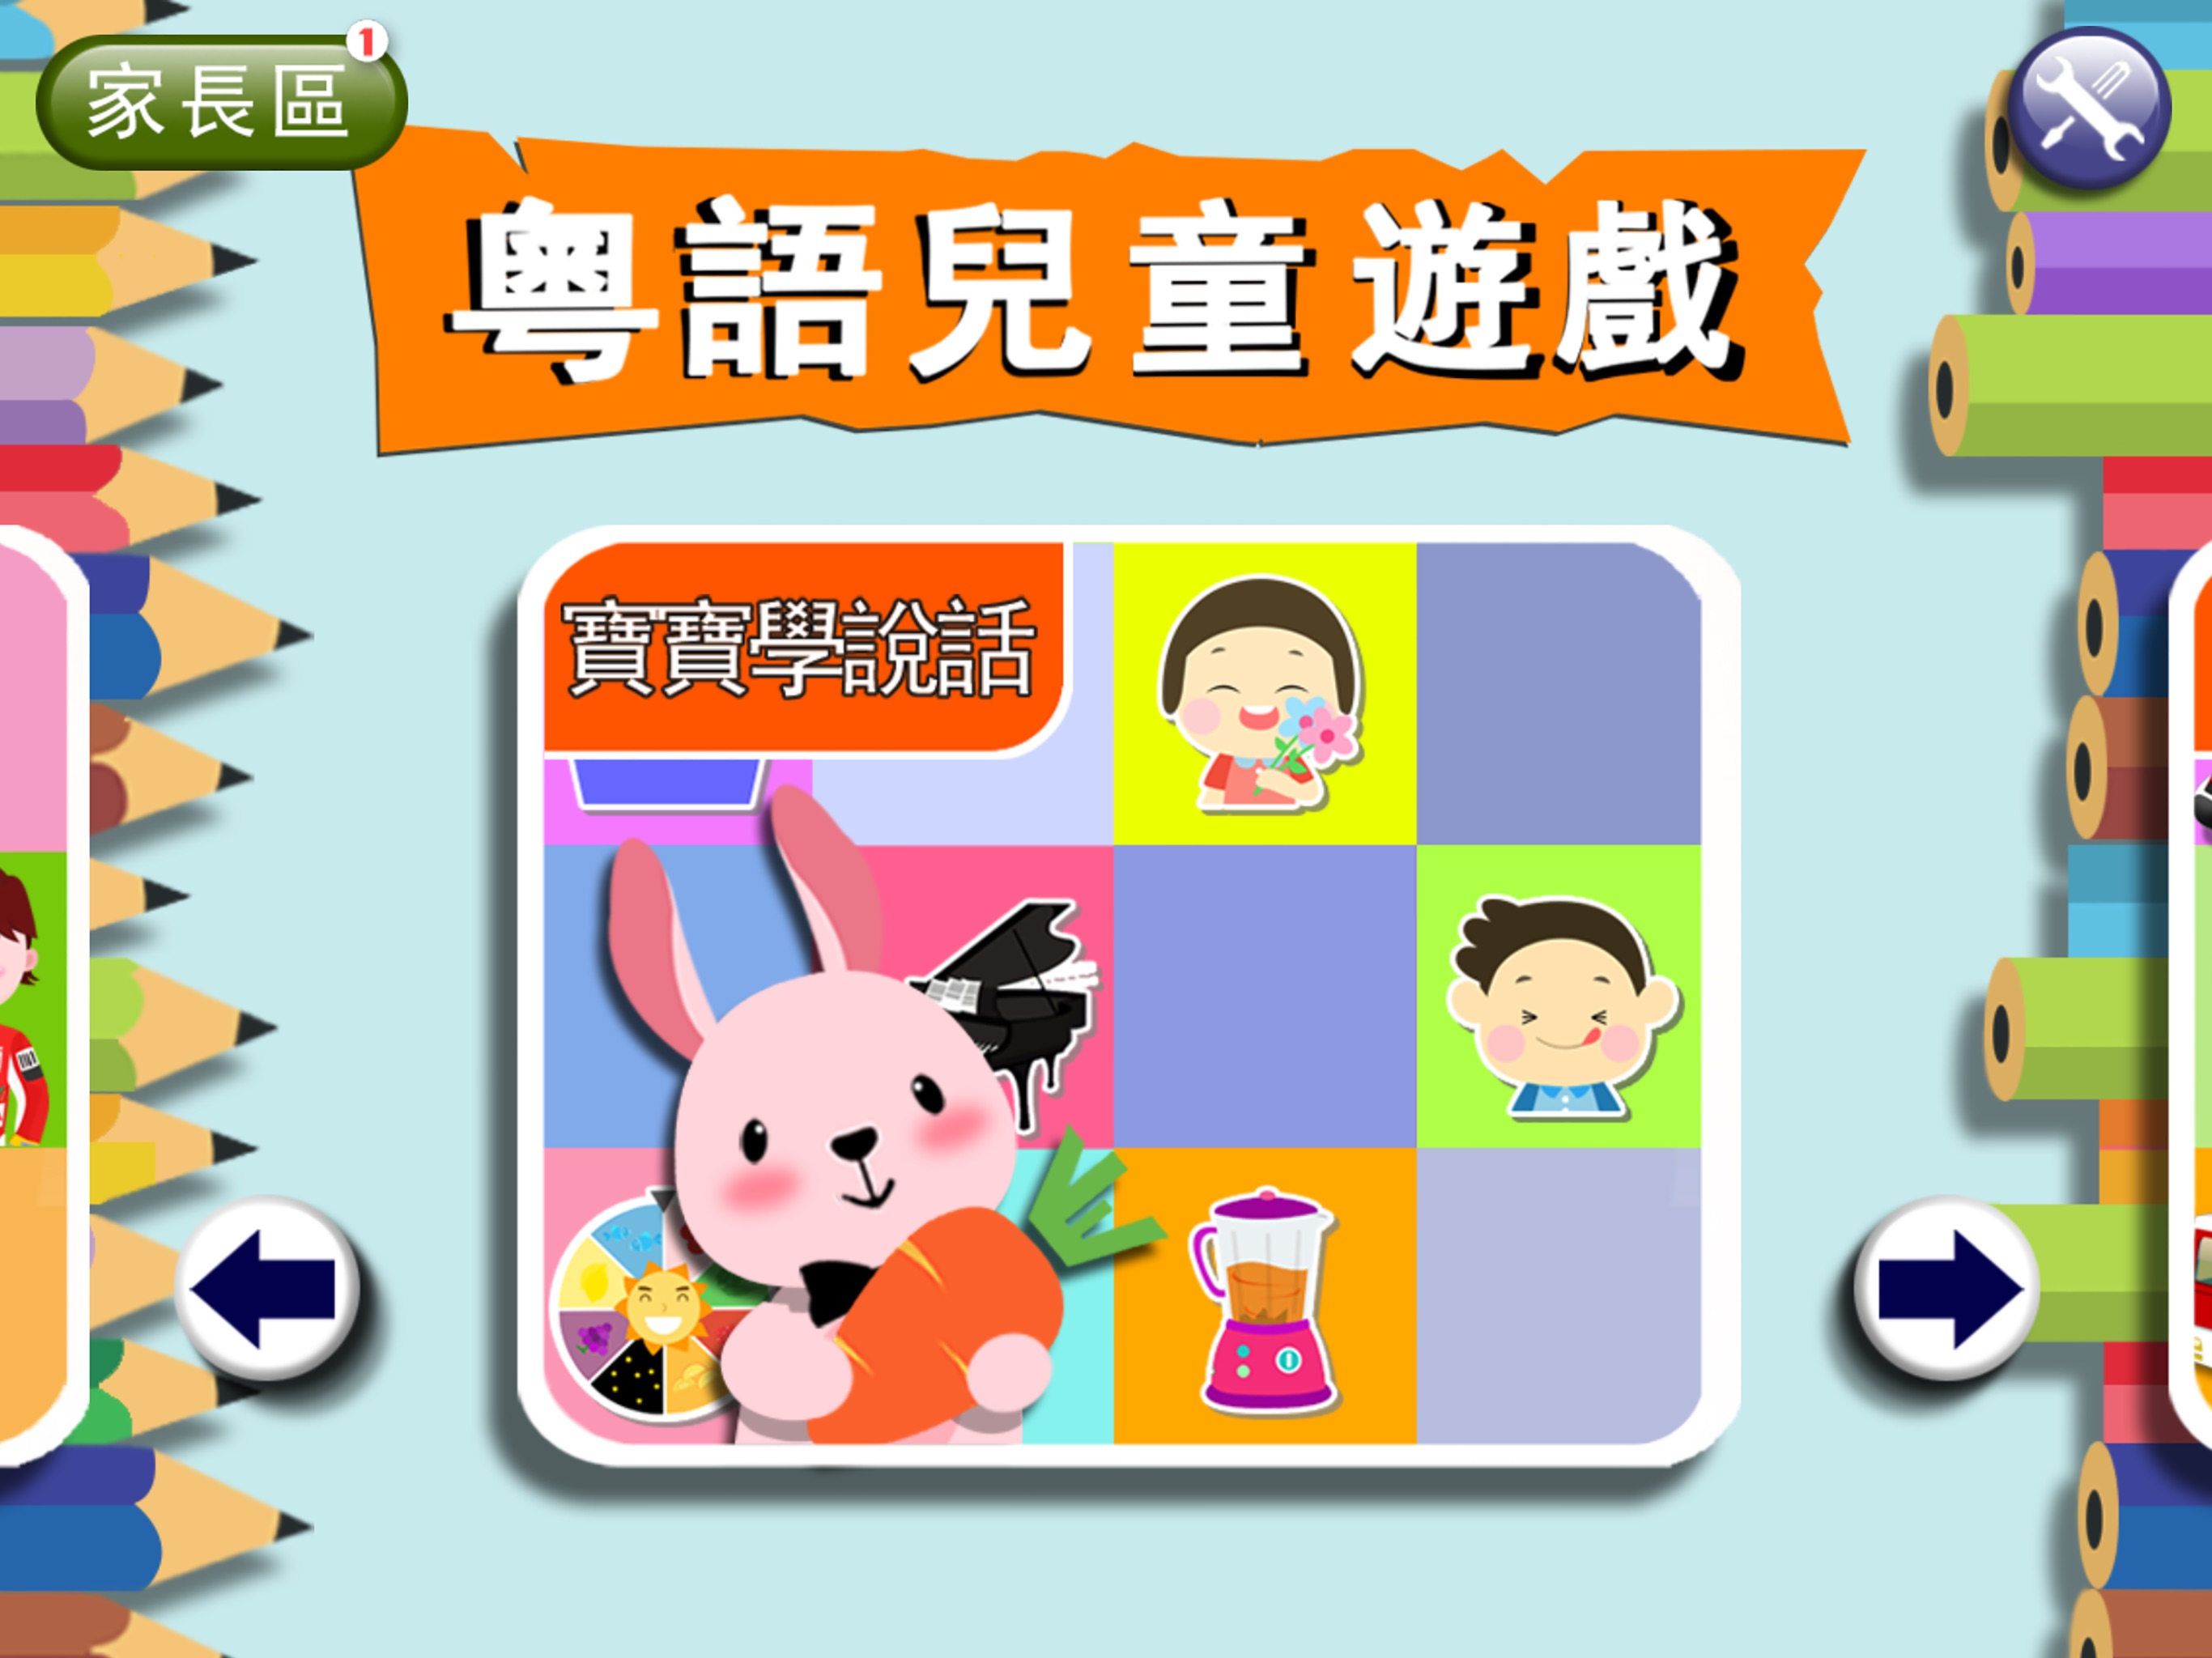 Cantonese Game For Kids-粤语儿童游戏-粵語兒童遊戲